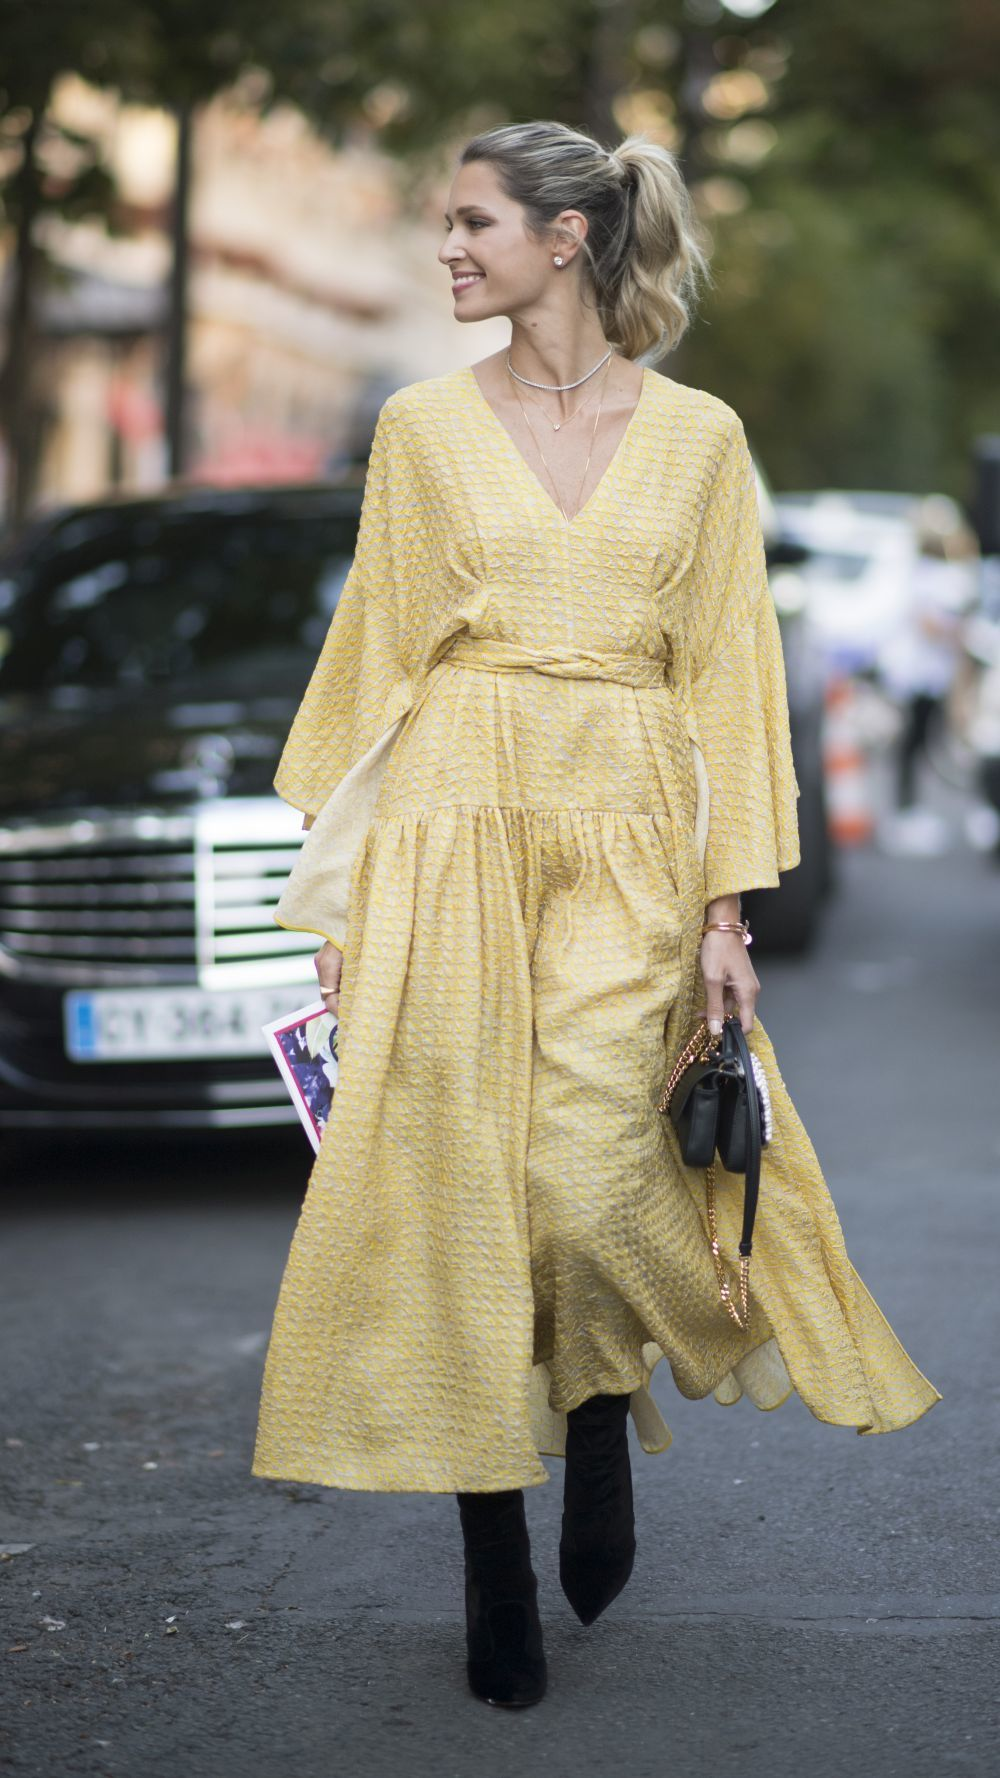 PARIS, FRANCE - JULY 05: Helena Bordon seen in the streets of Paris after the Fendi show on July 5, 2017 in Paris, France. (Photo by Timur Emek/Getty Images)